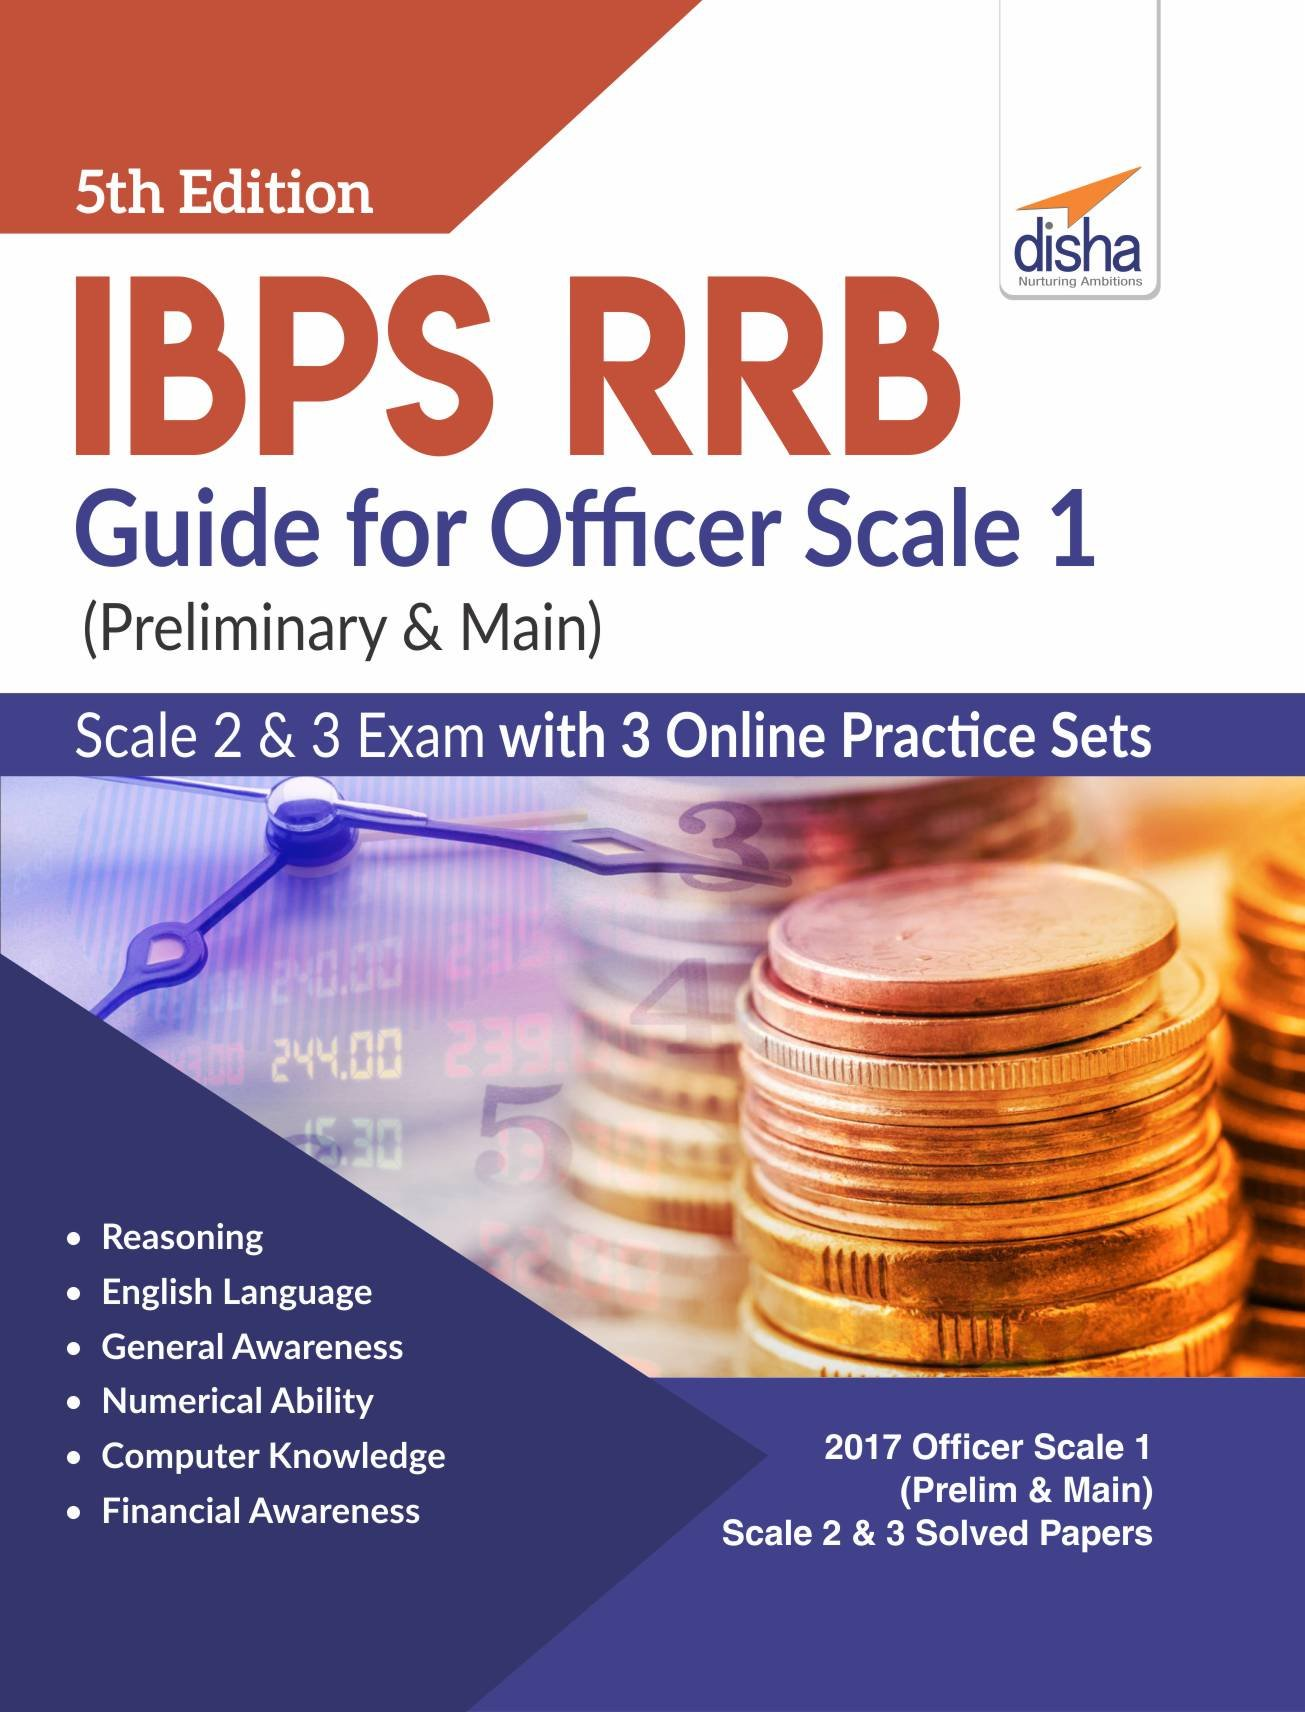 IBPS RRB Guide for Officer Scale 1 Preliminary & Main , 2 & 3 Exam with 3  Online Practice Sets: Amazon.in: Disha Experts: Books